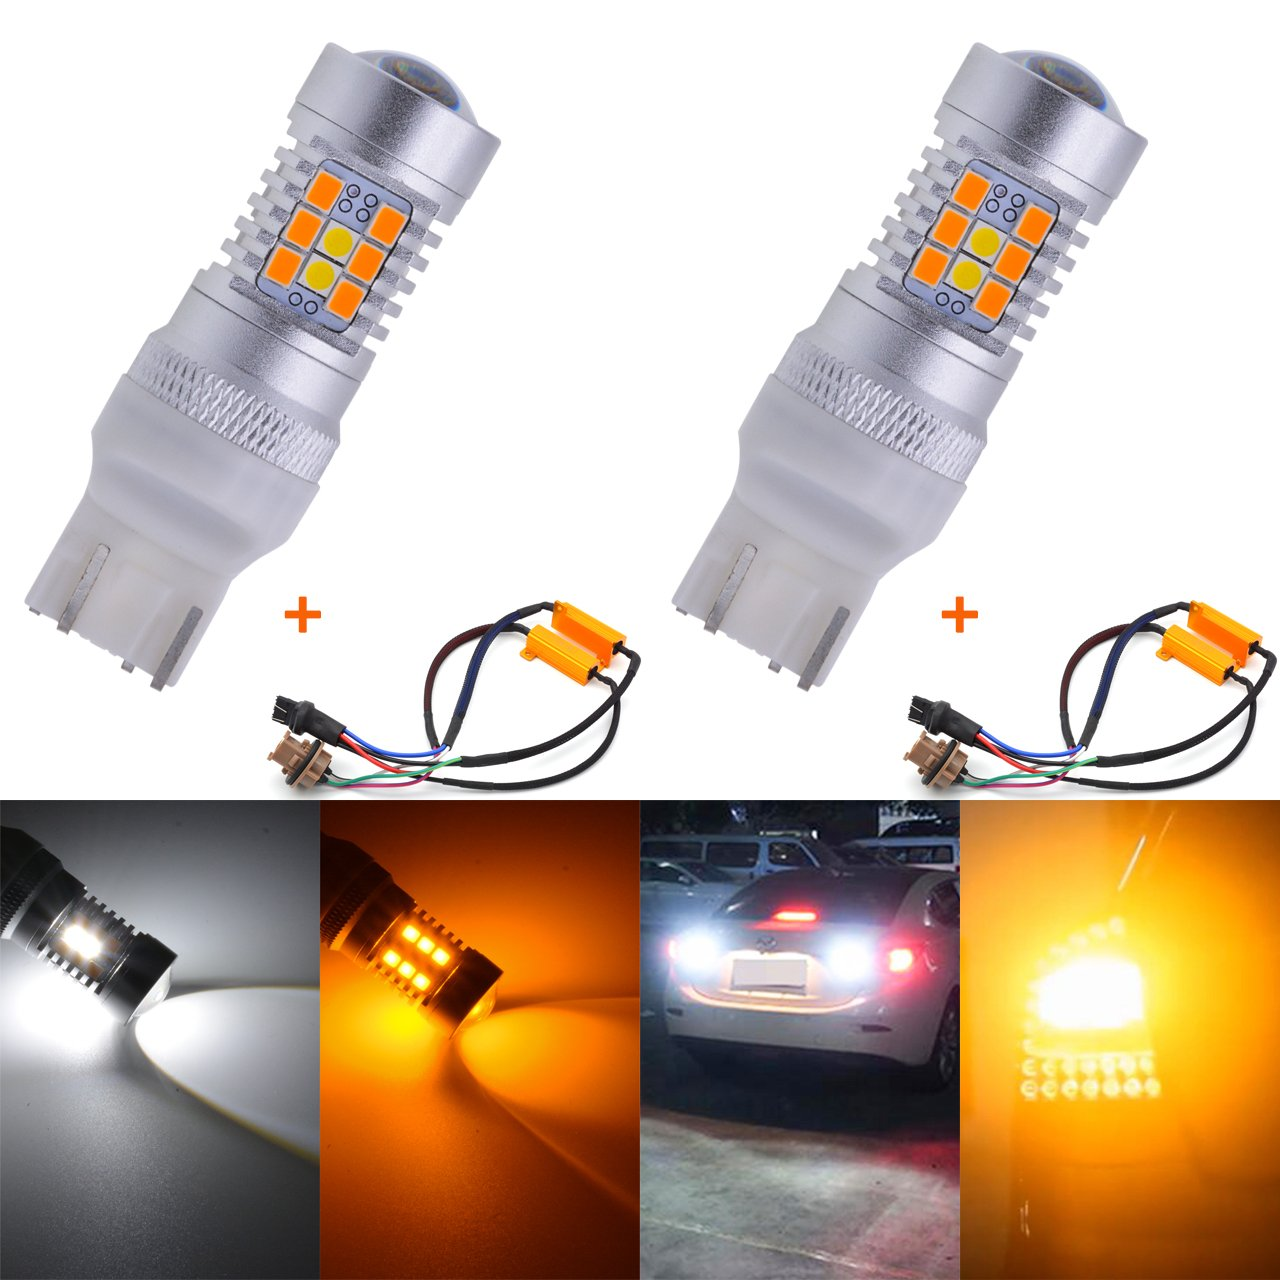 TUINCYN 7443 7444NA 7440 7440NA 7441 992 CANBUS Error Free LED Switchback Turn Signals Led Light Bulb Super Bright White/Amber Dual Color Brake Light with 50W 8 ohm 7443 Led Load Resistors(2-Pack)